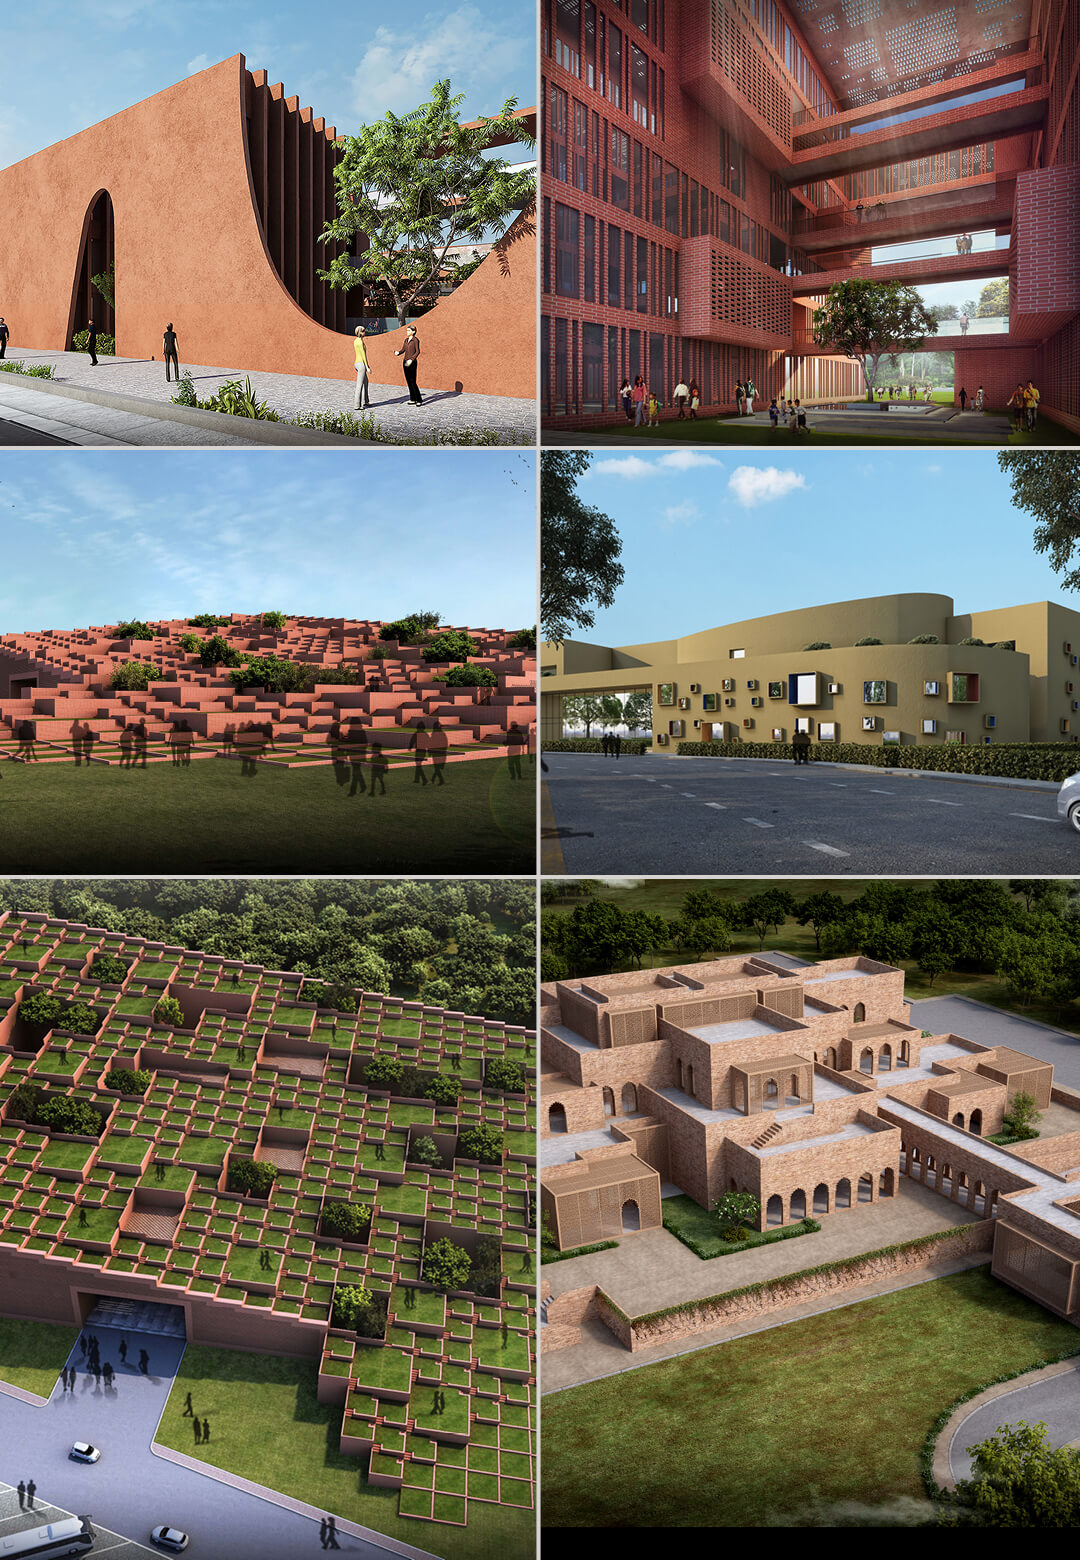 The upcoming projects by Sanjay Puri architects | Sanjay Puri Architects | STIRworld